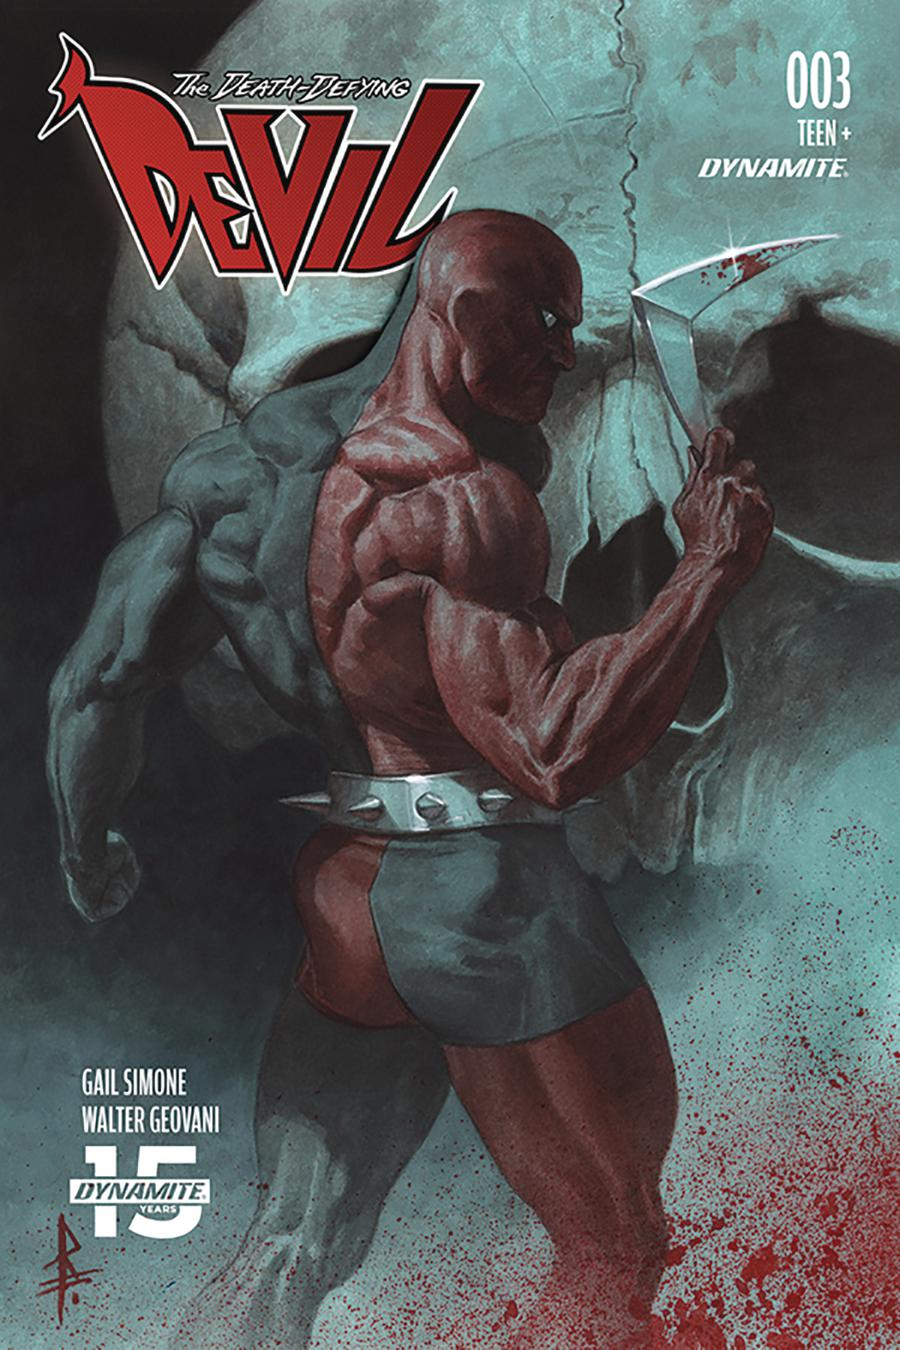 Death-Defying Devil Vol 2 #3 Cover C Variant Riccardo Federici Cover